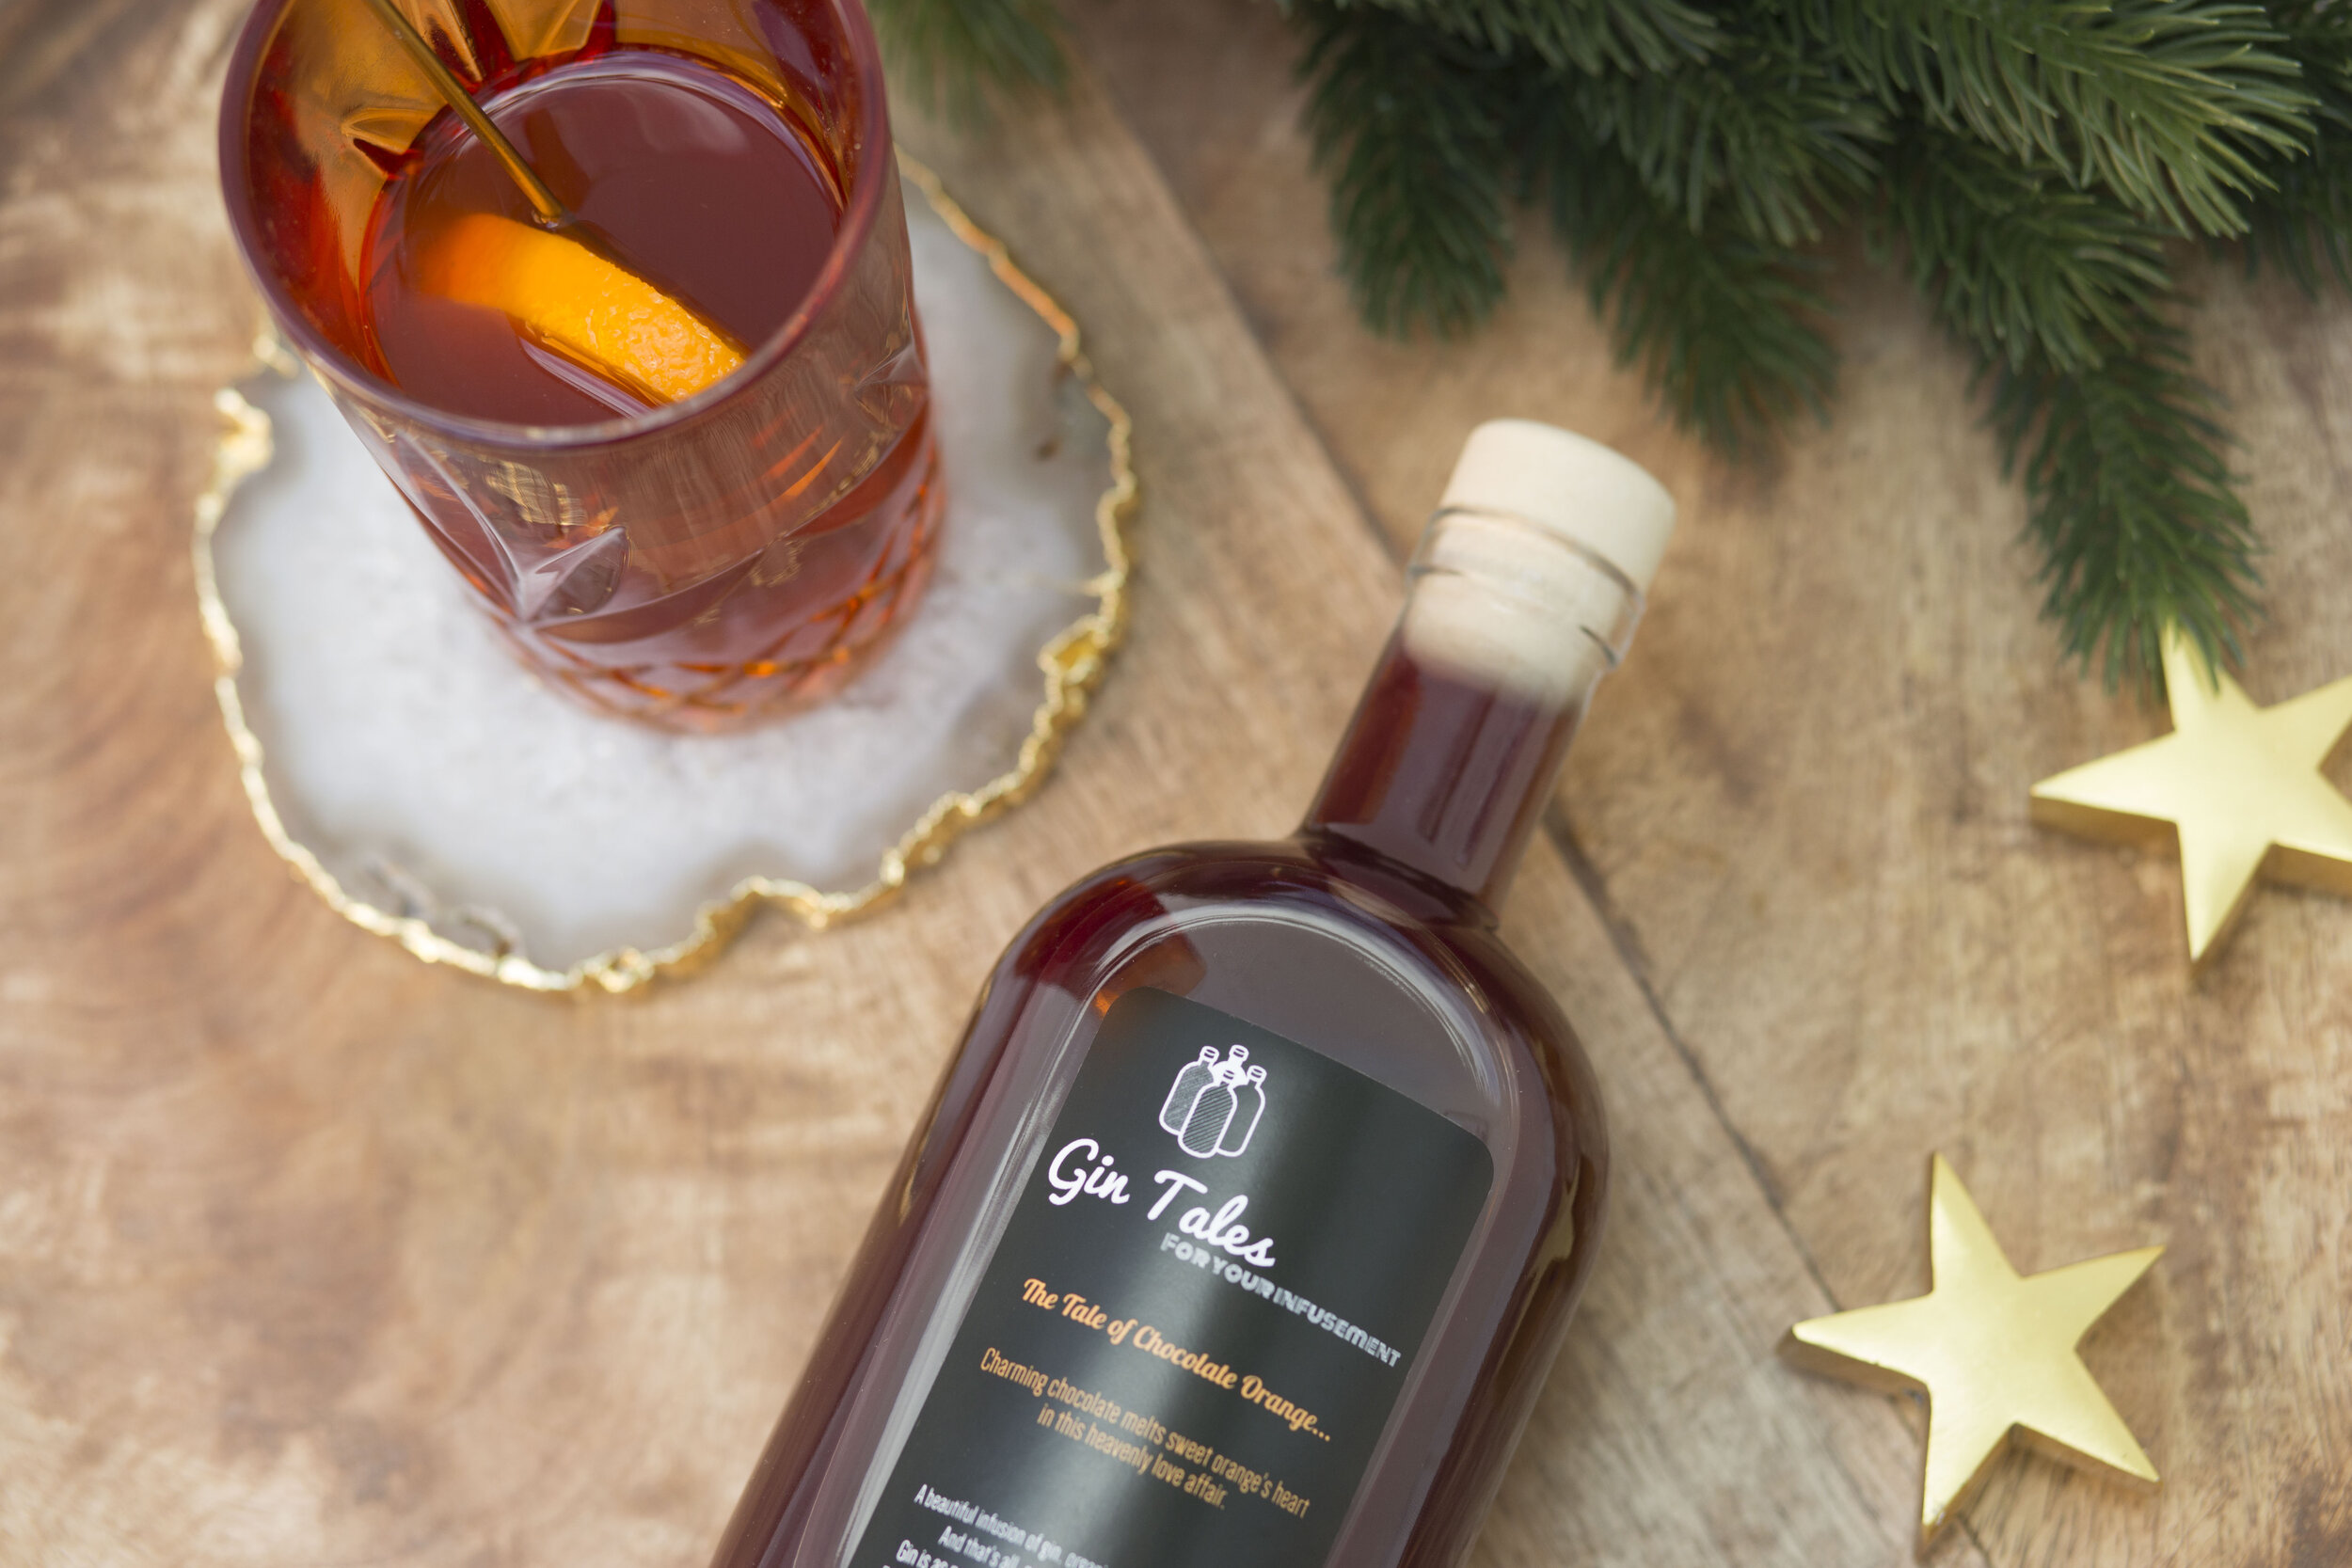 Gin Tales Chocolate Orange Gin | Gin Ideas to Buy, Gift and Drink